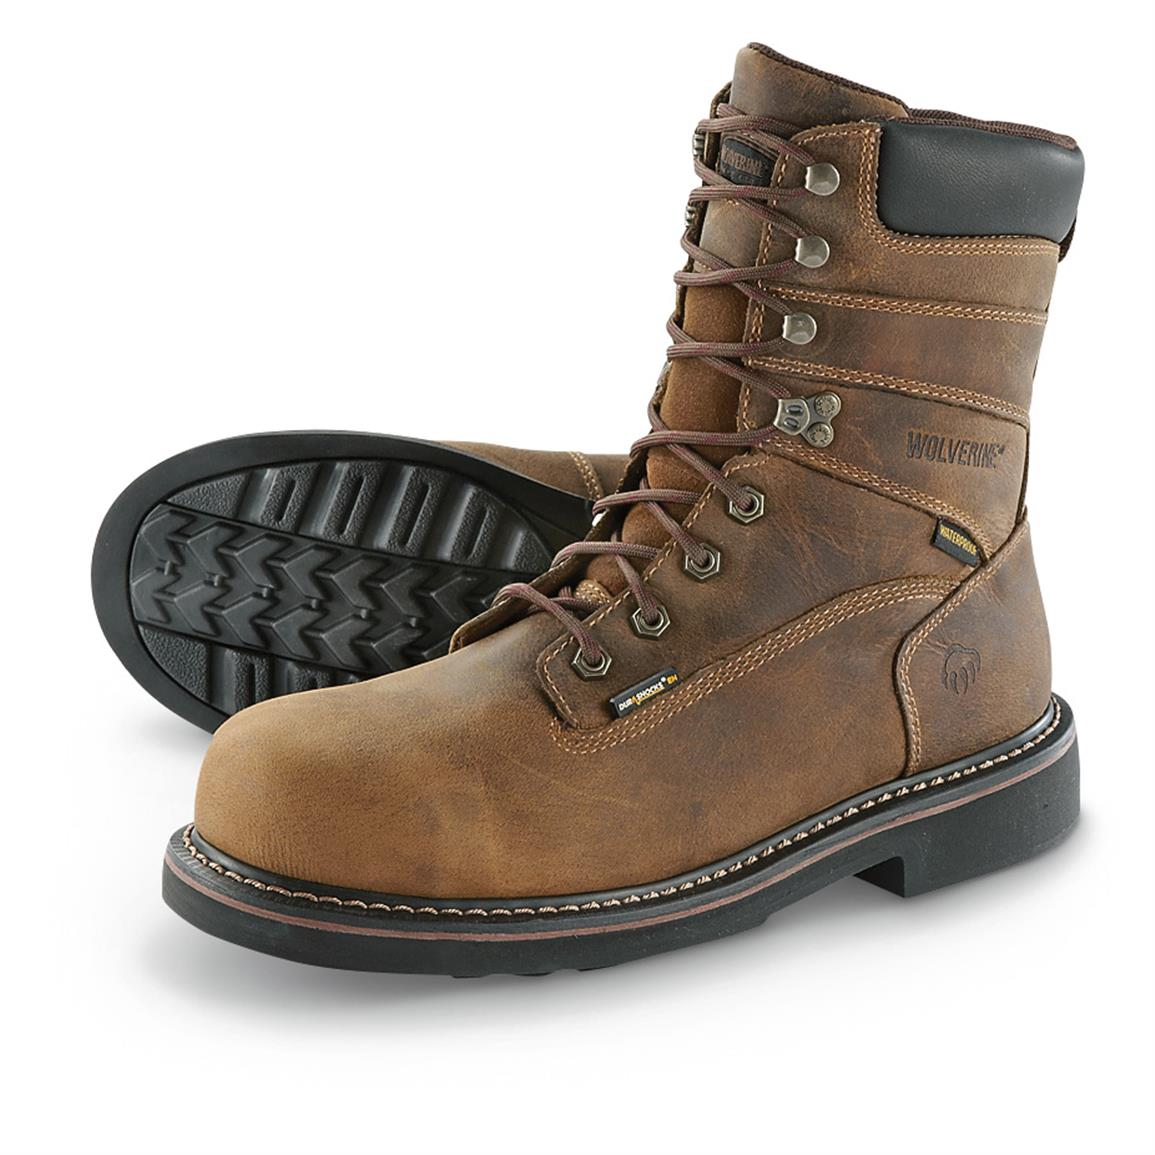 "Wolverine Men's Brek 8"" Waterproof Work Boots, Brown"